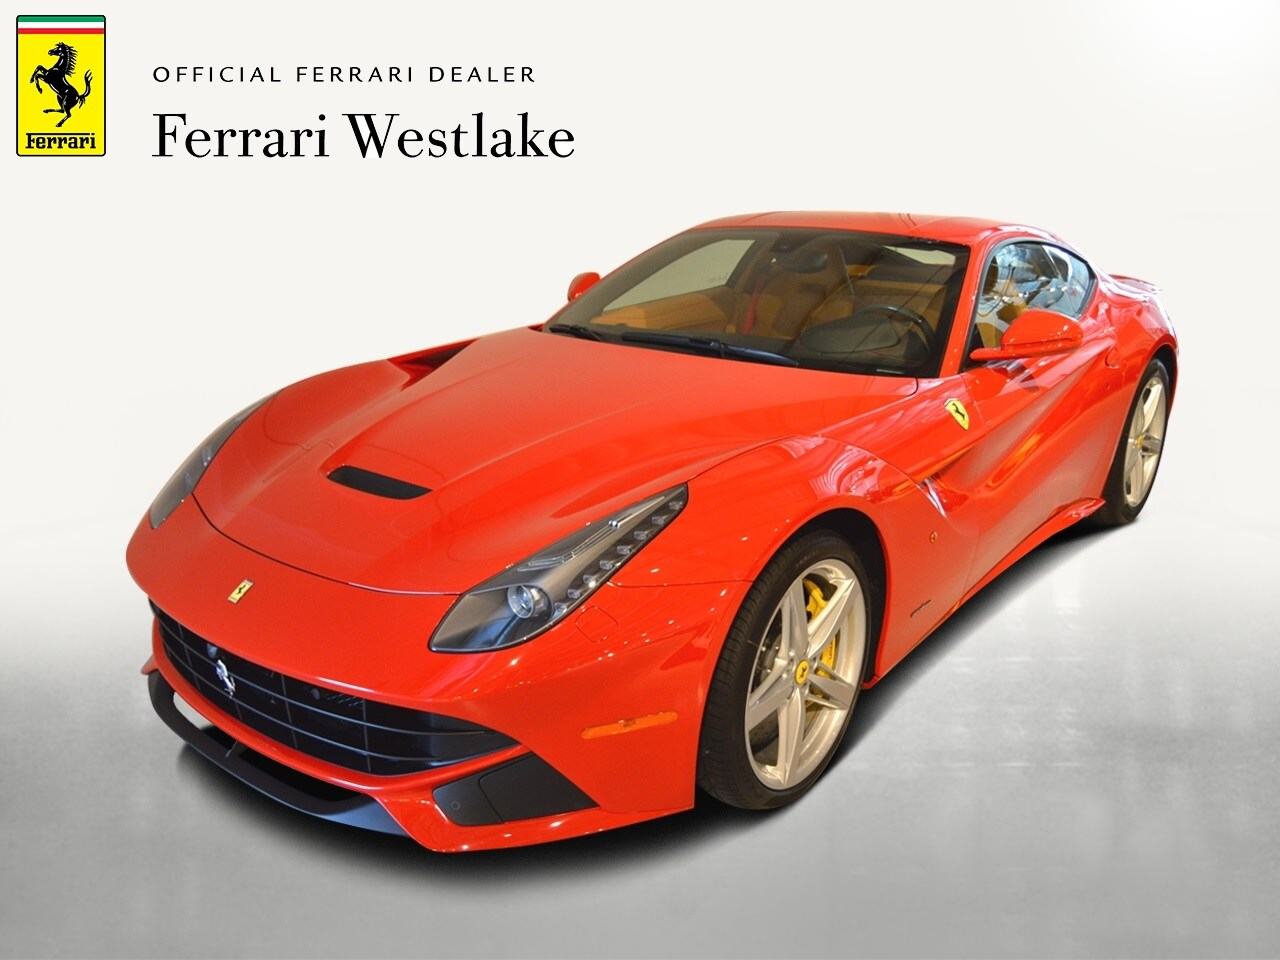 Certified Pre-Owned 2015 Ferrari F12berlinetta Coupe For Sale Beverly Hills, California